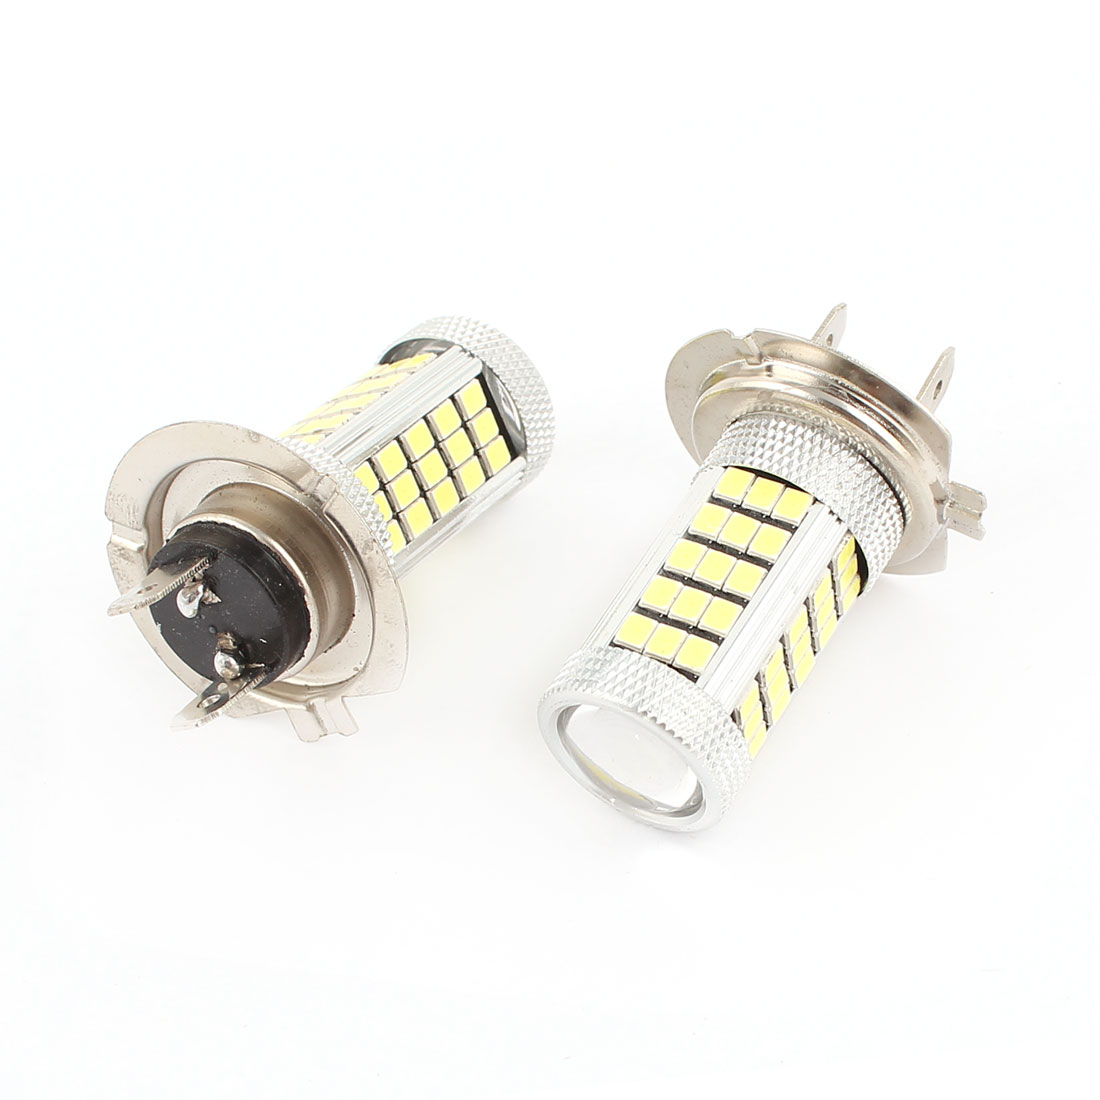 Car White LED 63 SMD 3528 Bulbs H7 Fog Daytime Light Lamp 2 Pcs